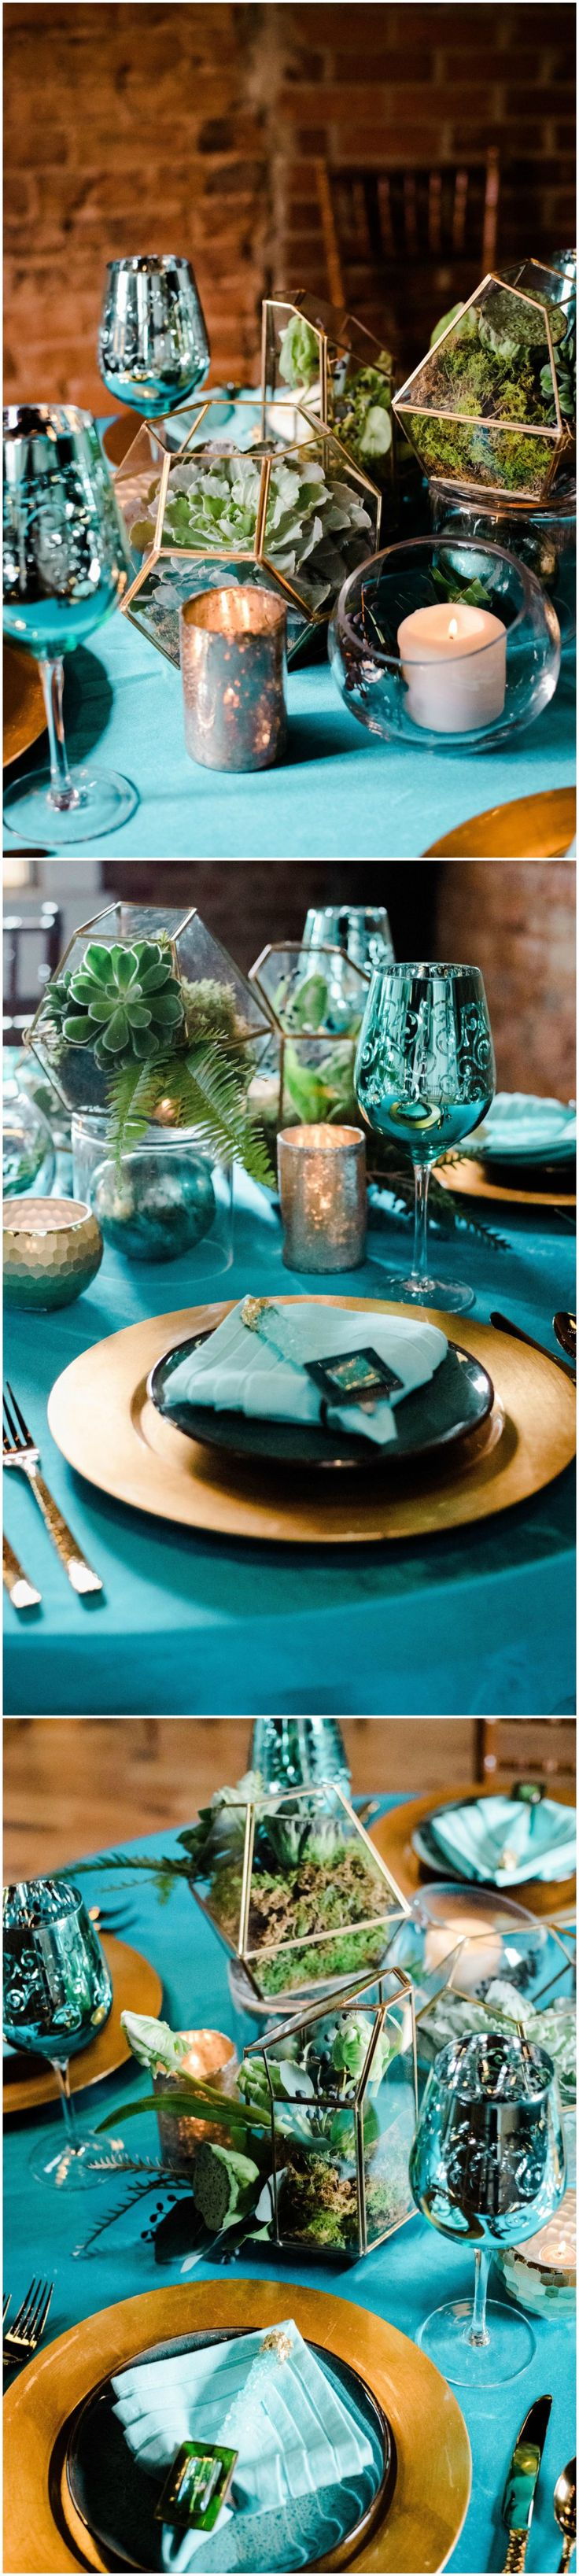 Bright teal tablecloths and napkins, eclectic indoor wedding reception decor, gold plates, natural centerpieces of mossy greens, succulents, candles // Katheryn Jeanne Photography